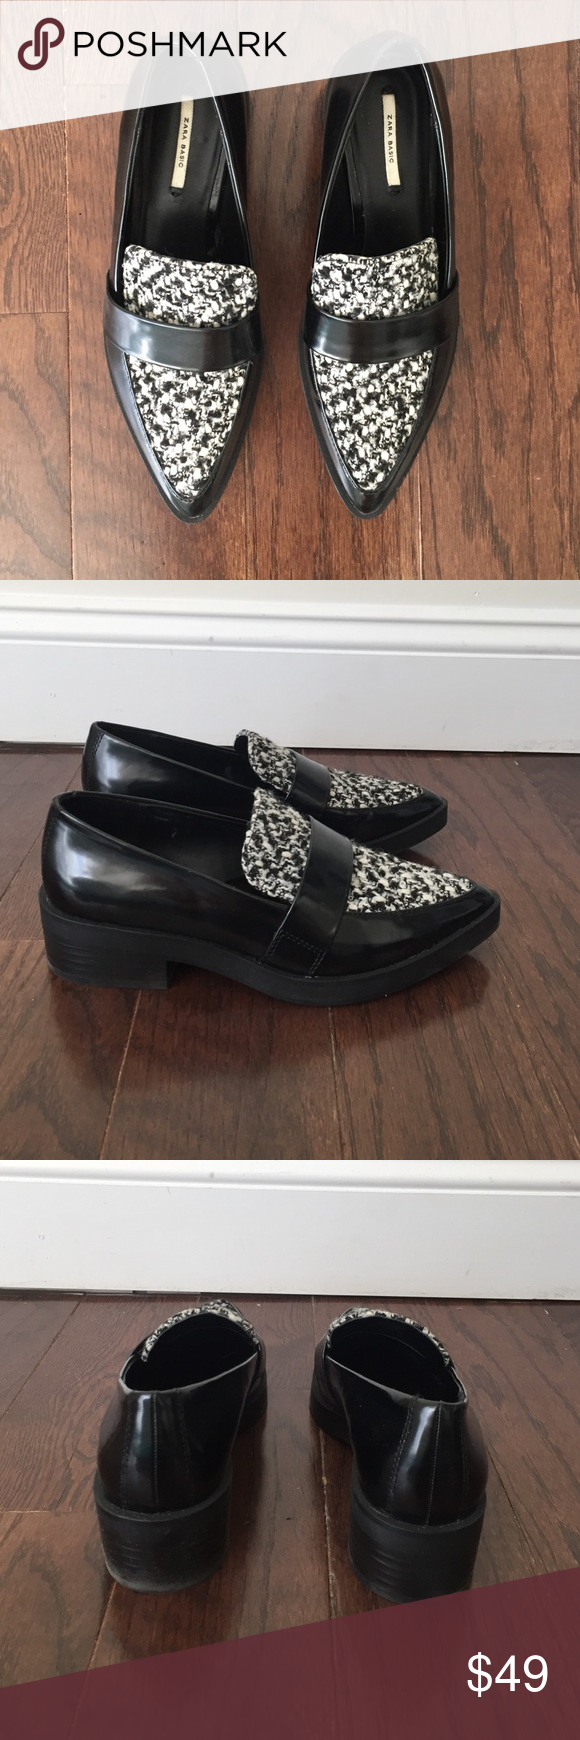 Zara Pointy Toe Loafers Black patent pointy toe heeled loafers with textured black and white material. Worn once. Zara Shoes Flats & Loafers